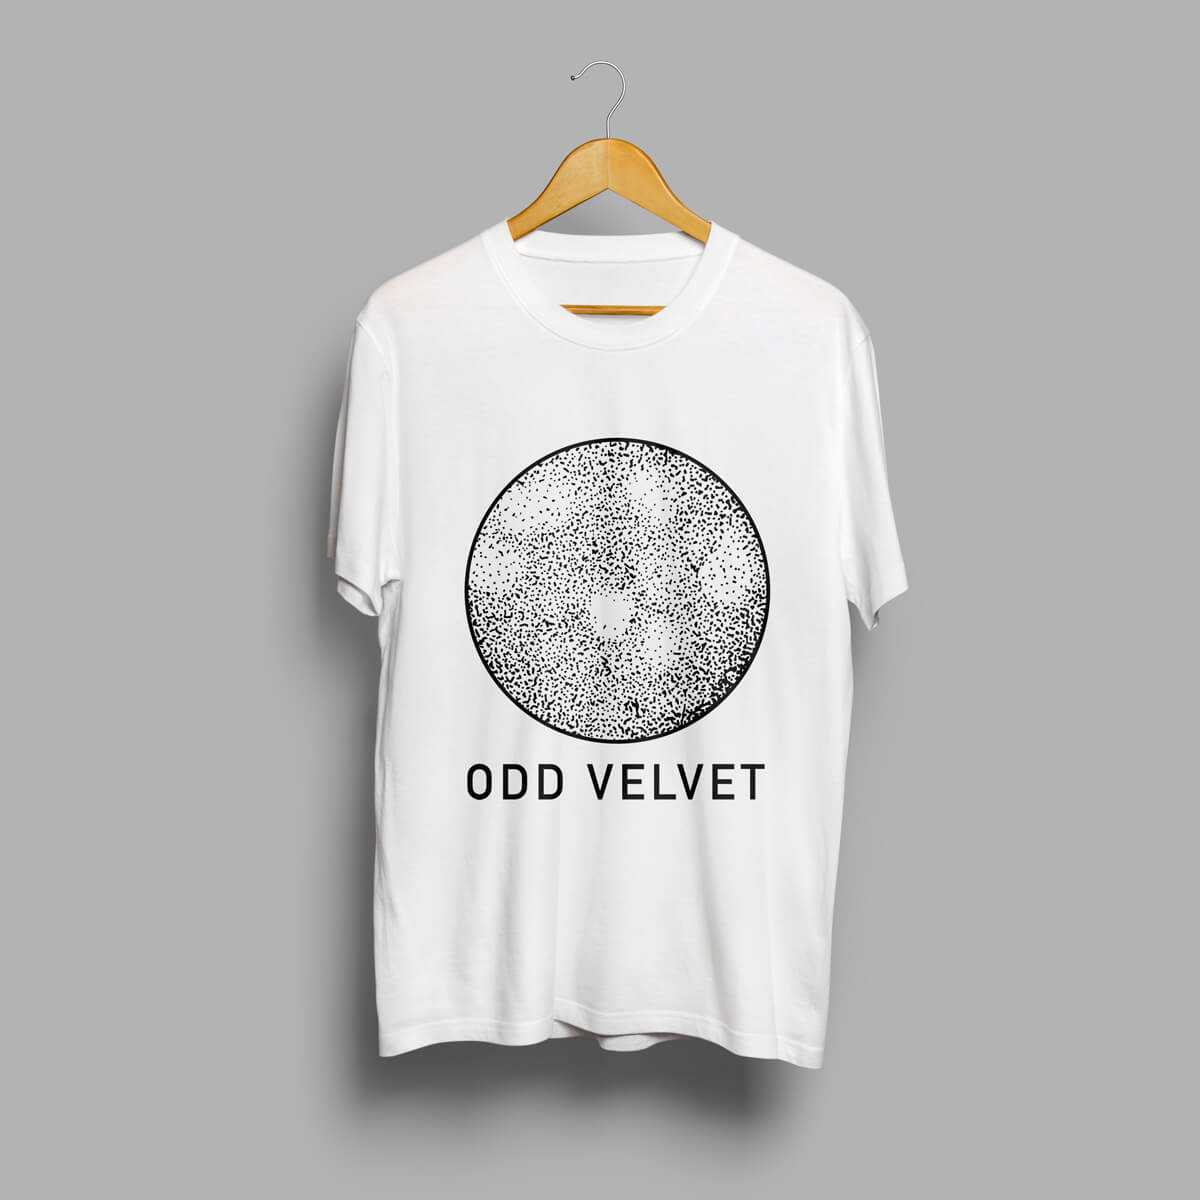 the-four-design-odd-velvet-shirt-mockup.jpg